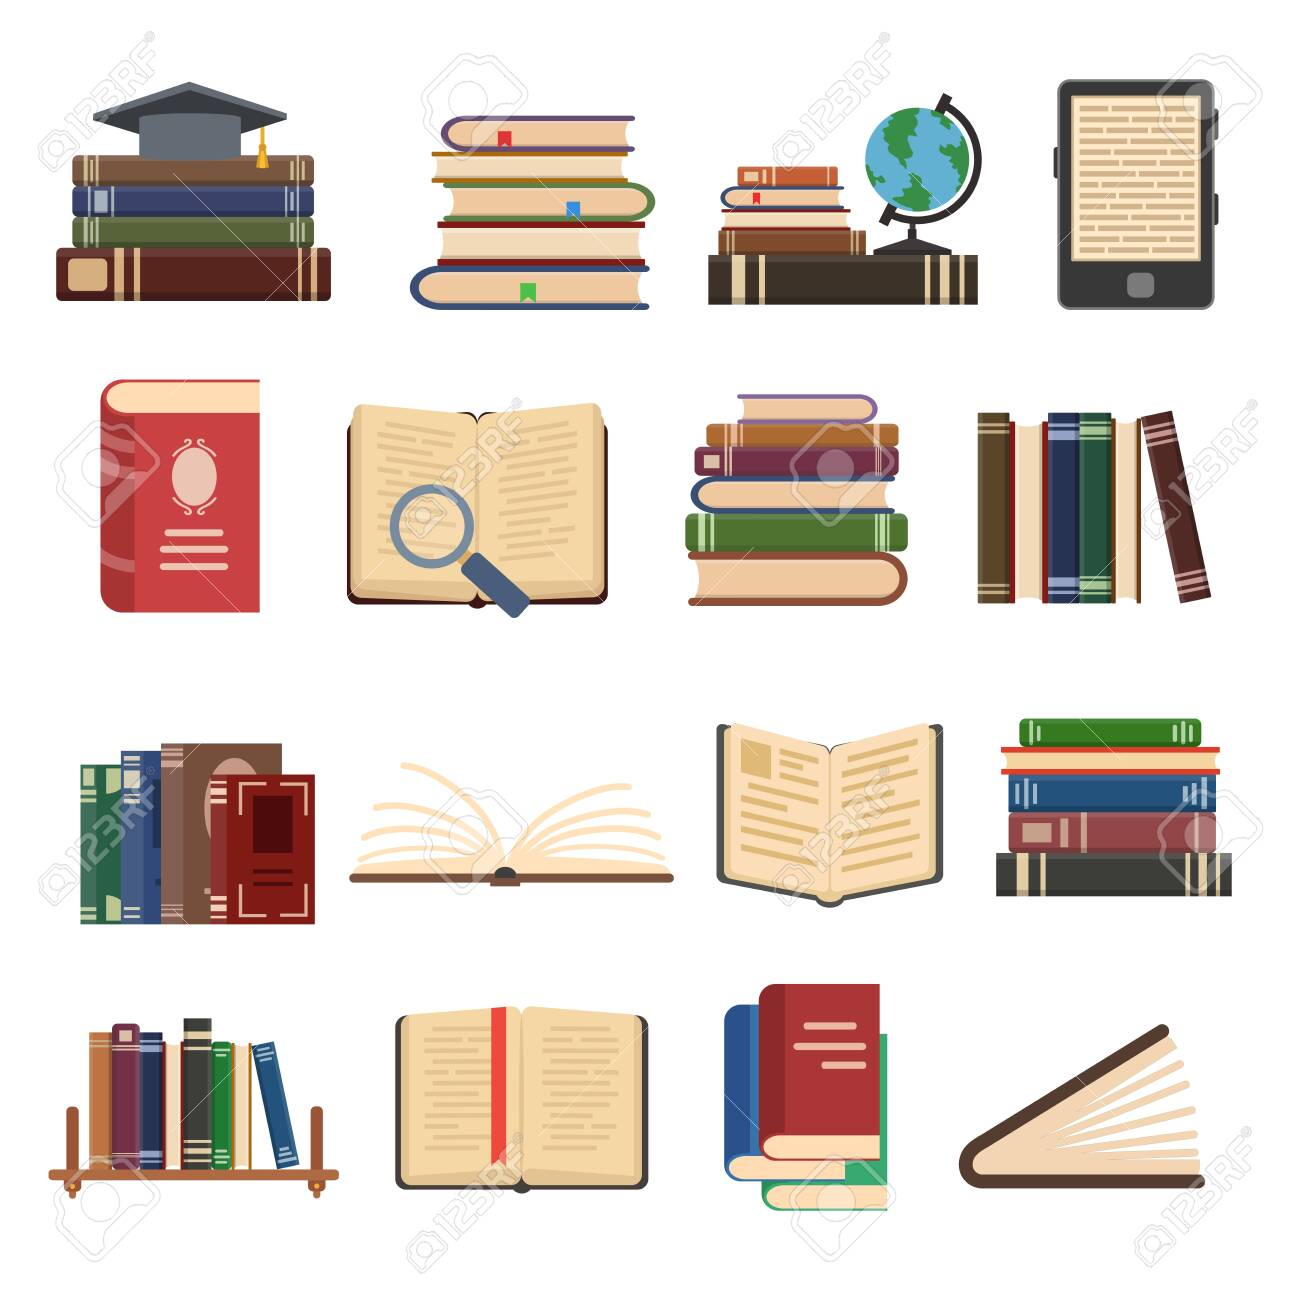 Flat book icons. Library books, open dictionary page and encyclopedia on stand. Pile of paper magazines, ebook globe and novel booklet, publishing vector isolated symbols set - 148595302